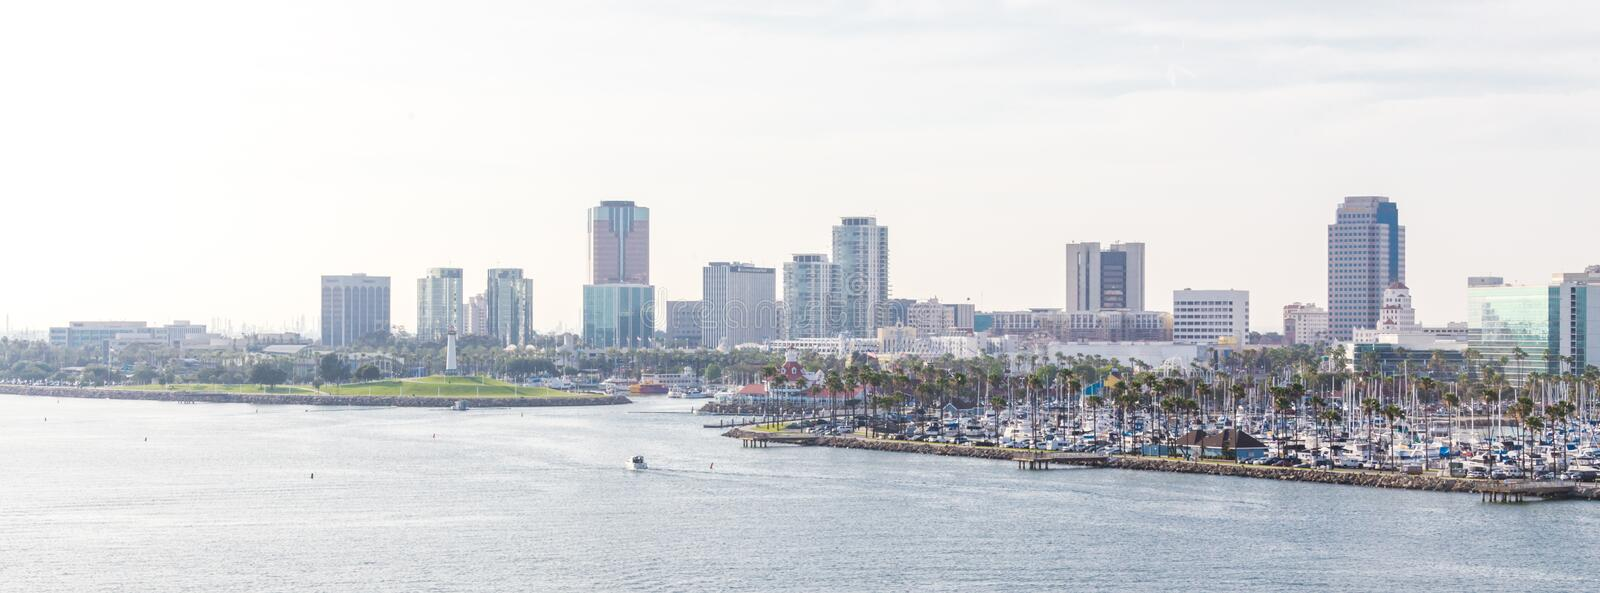 Long Beach California the USA port skyline with skyscrapers royalty free stock photography